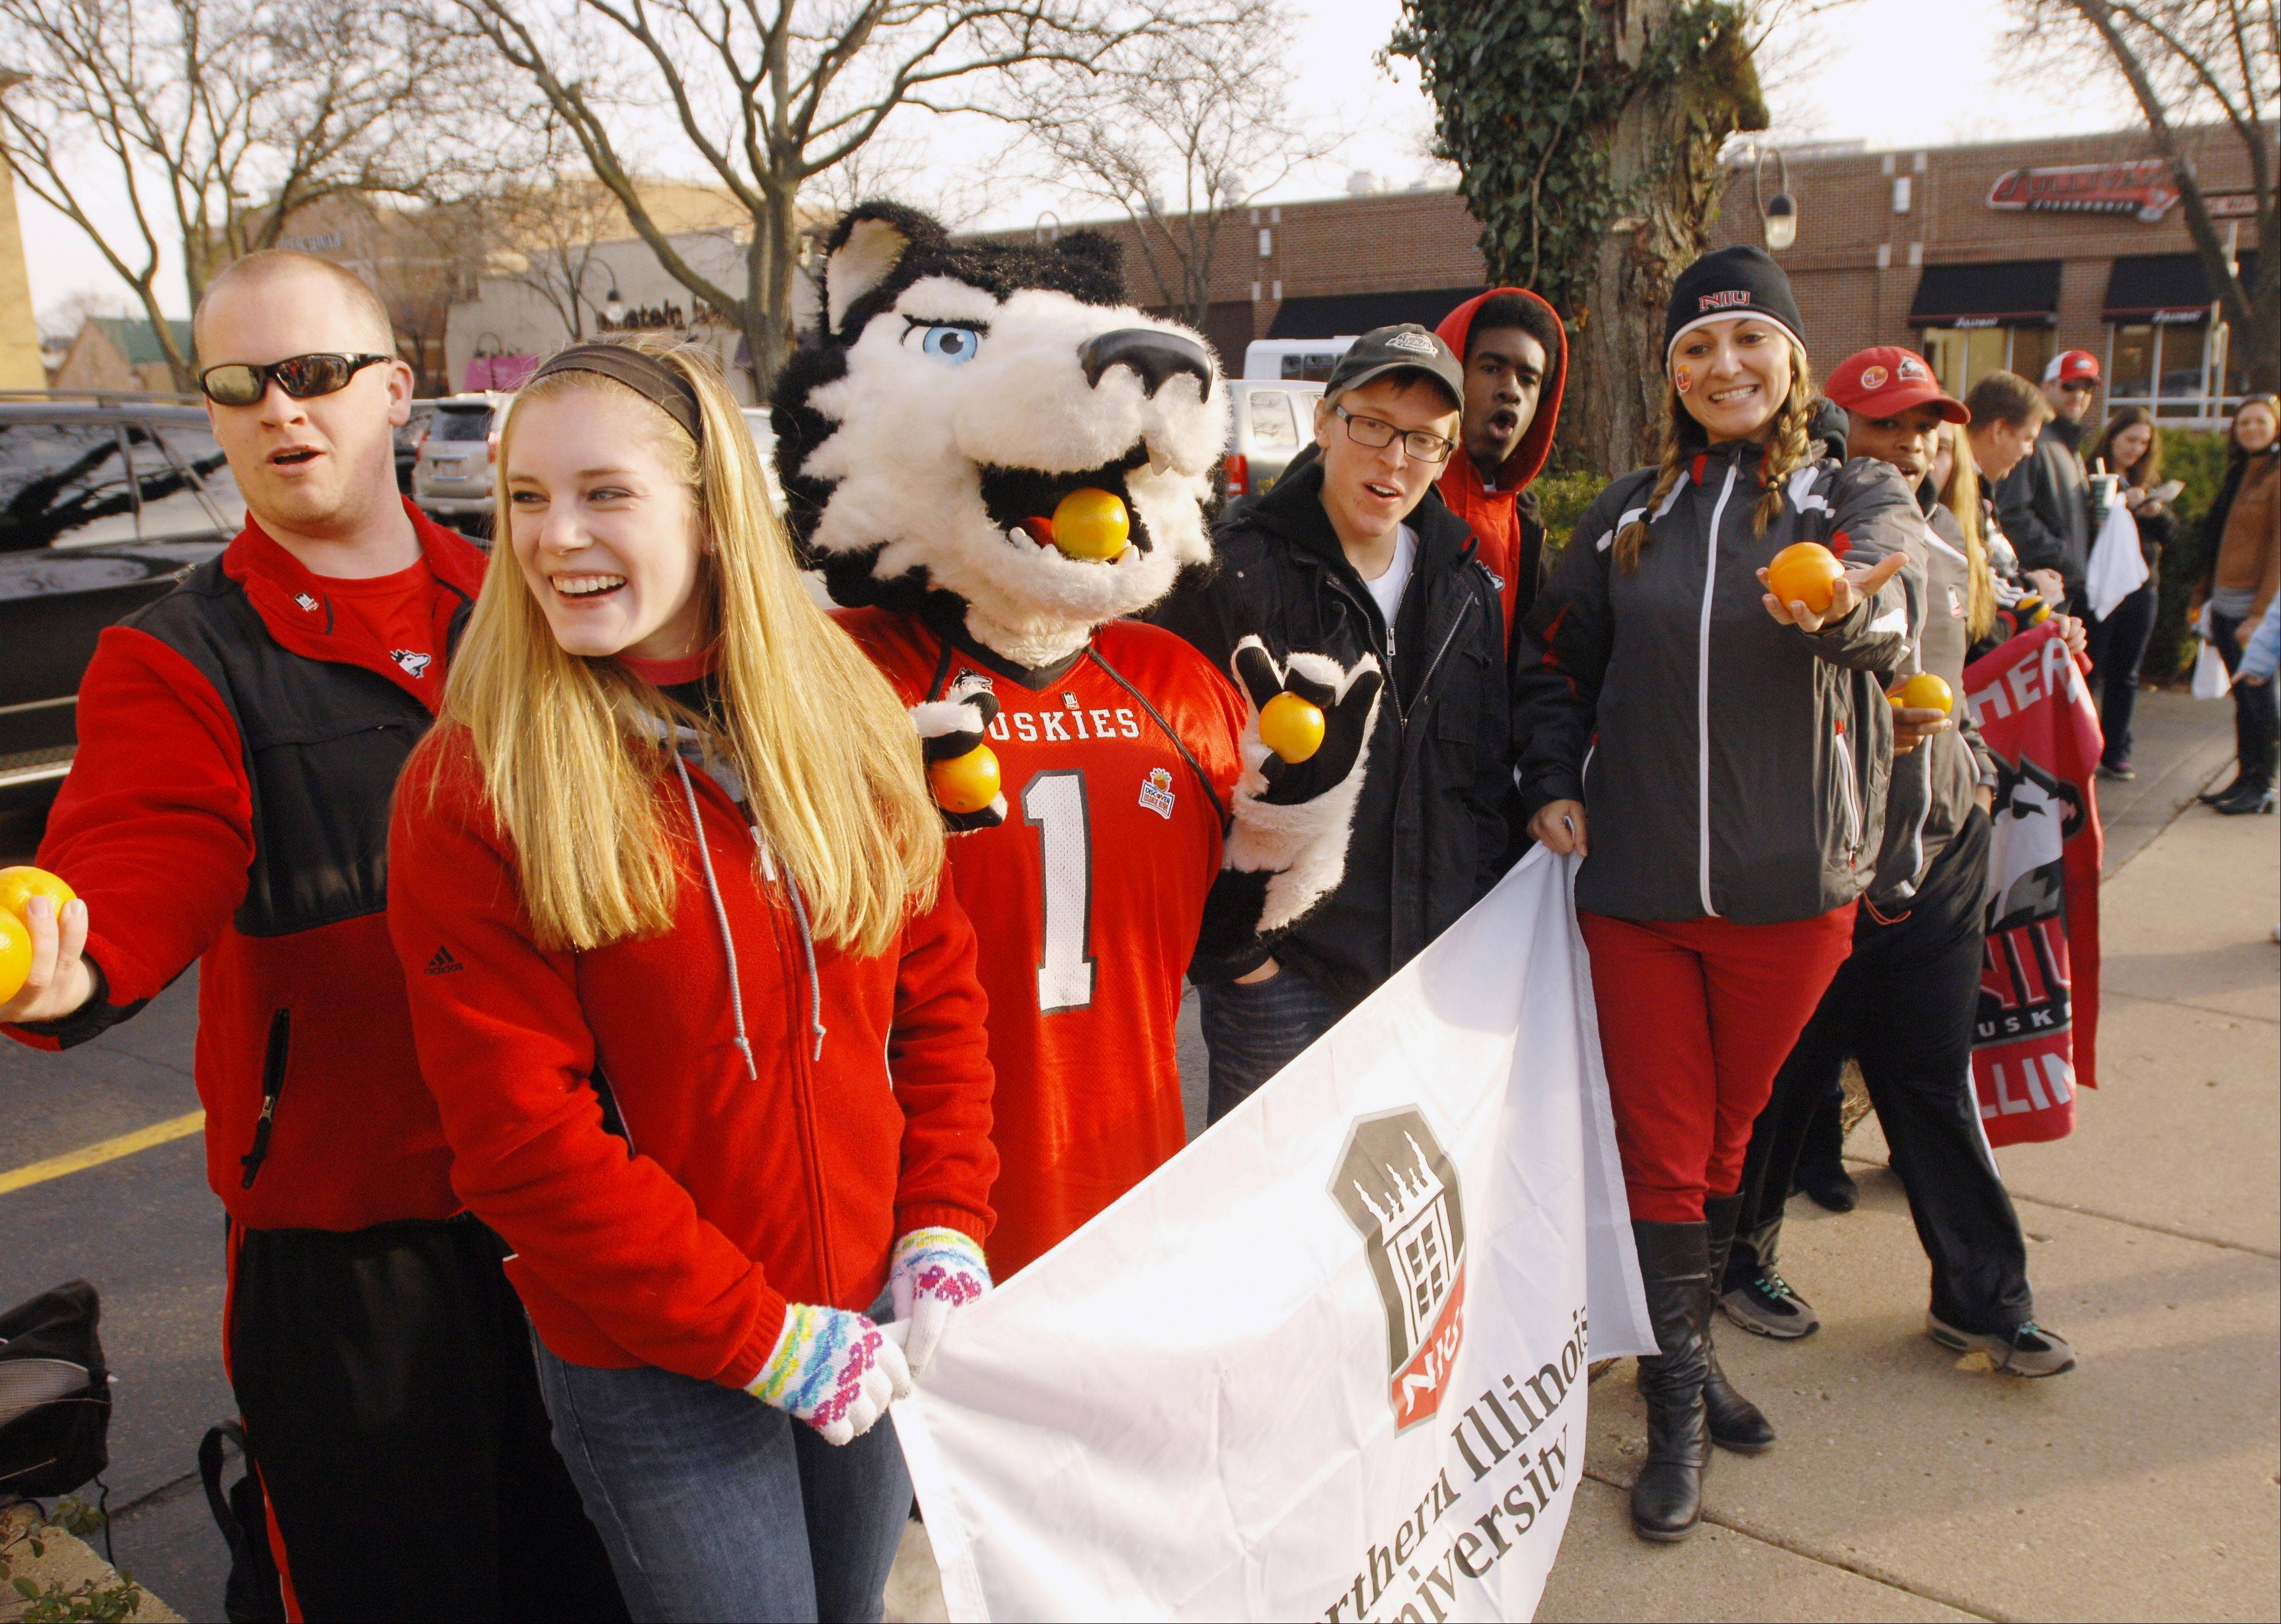 A group of Northern Illinois University students and mascot Victor E. Huskie traveled throughout the suburbs and city on Friday, including downtown Naperville, to promote the football team's Jan. 1 trip to the Orange Bowl. They handed out 2,000 oranges to fans over more than 12 hours.